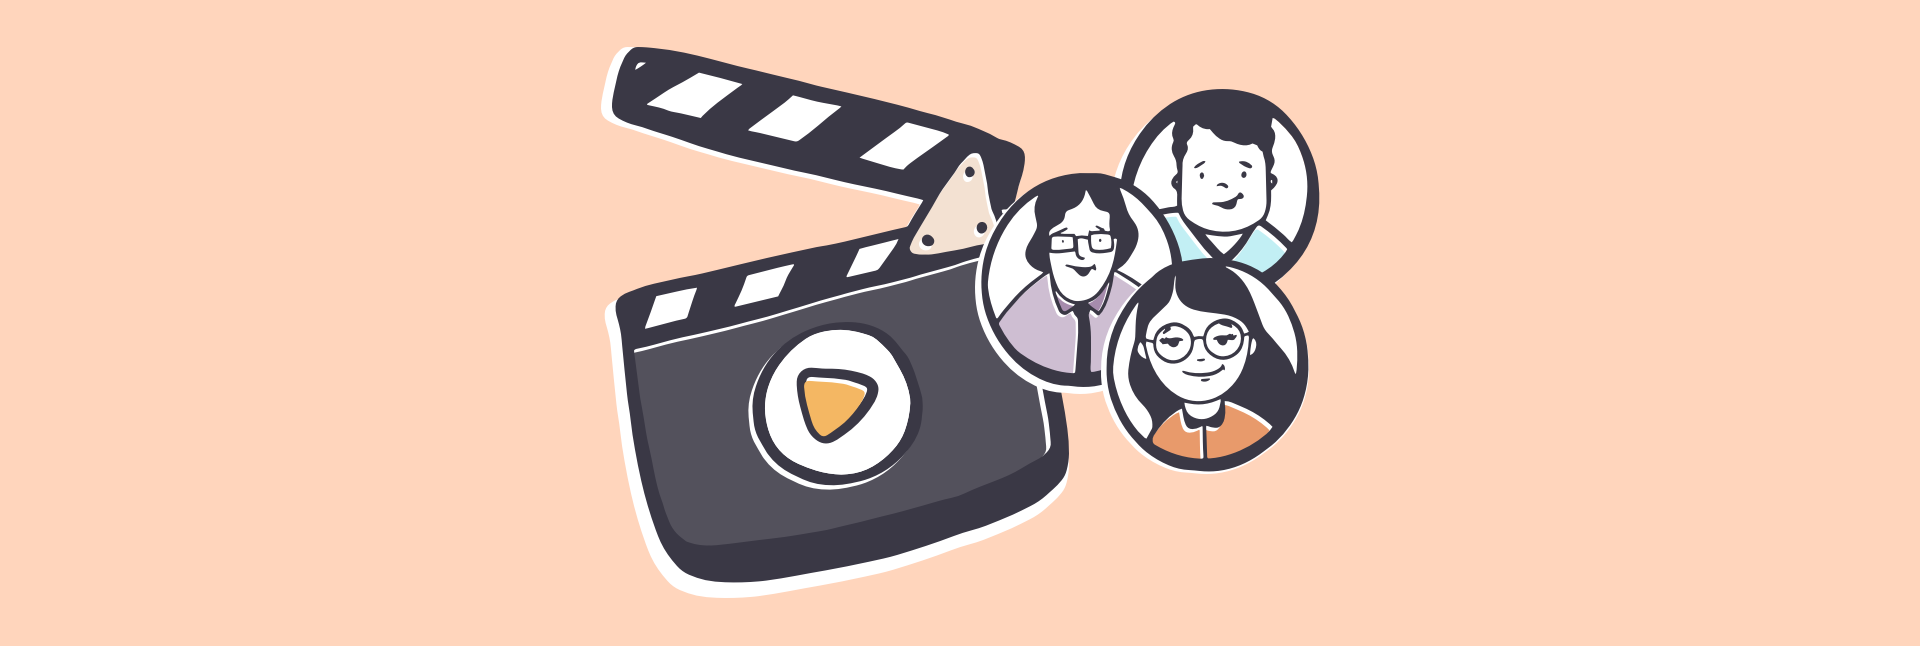 How To Watch Movies With Friends Online